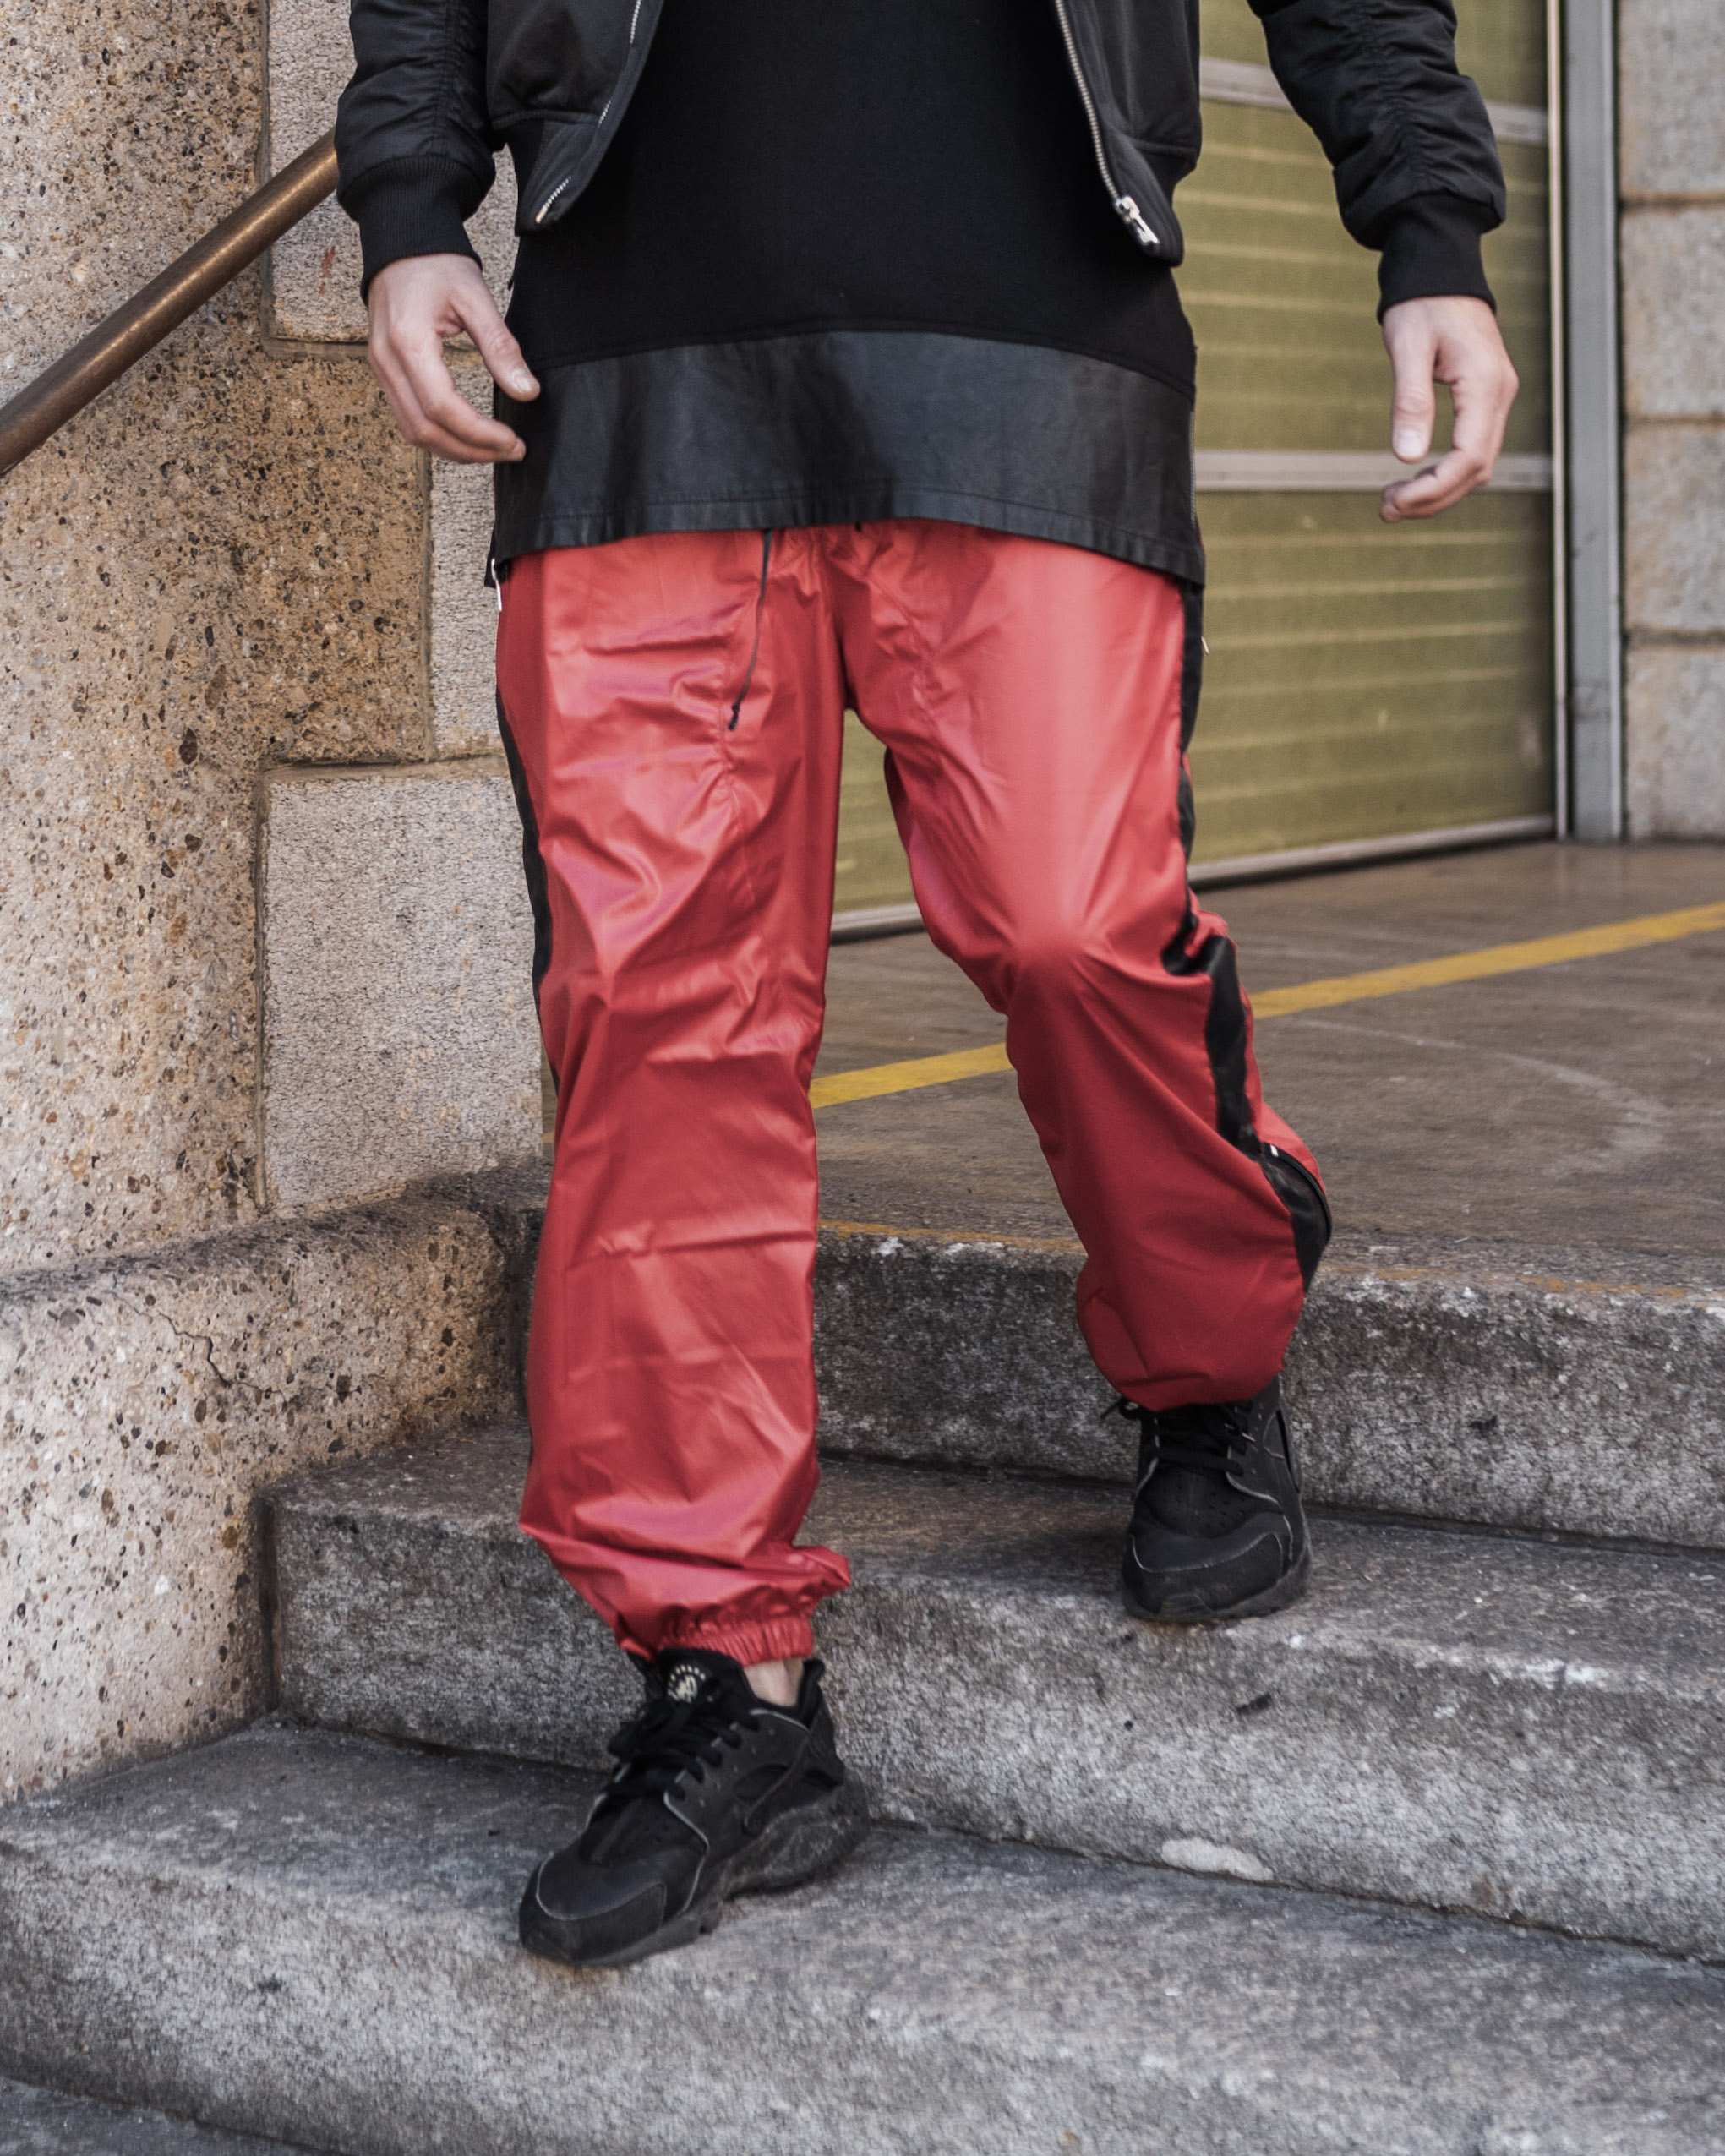 essential, trainerhosen, hosen, pants, soft pants, fashion, zürich, nightlife, marco diener, supermarket, hive, spacemonki, coachella, burning man, rockboyz, finance, club, clubbing, festival, terrazzza, barcelona, ibiza, mykonos, ferrari, alt fashion, high fashion, fashionova, neue mode, cristiano ronaldo, black, schwarz, weiss, grün, green, white, grey, grau, cotton, viscose,